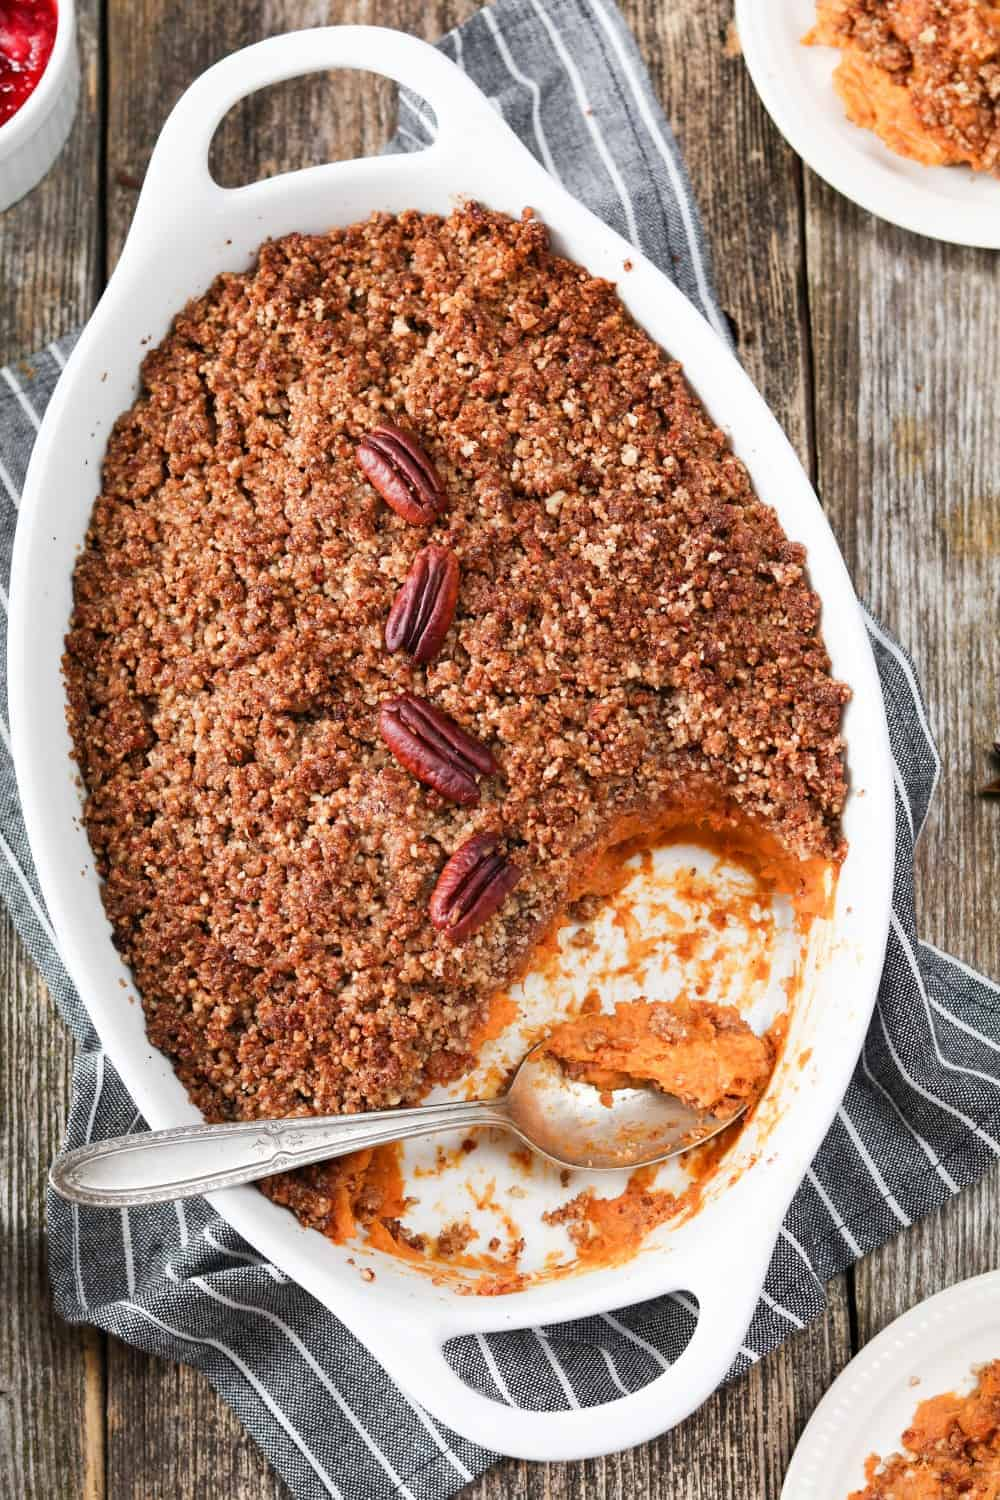 Fully baked sweet potato casserole in a white baking dish with spoon inside.